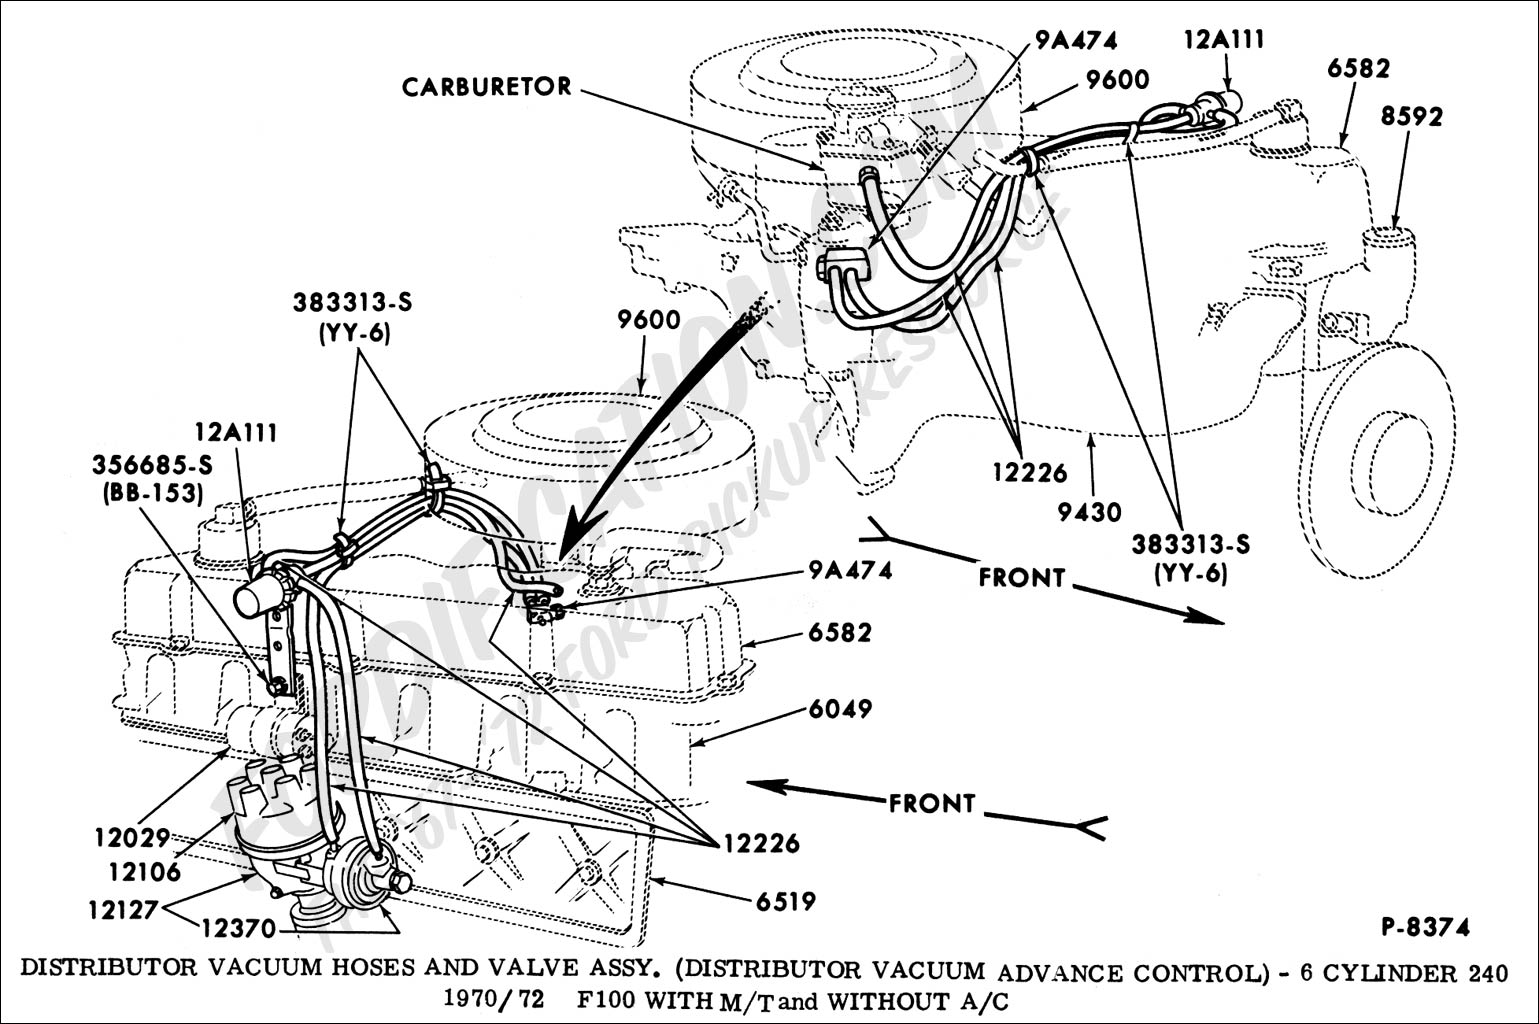 Ford F100 Engine Diagram Wiring Library 87 Dodge Truck Schematic Technical Drawings And Schematics Section I Electrical